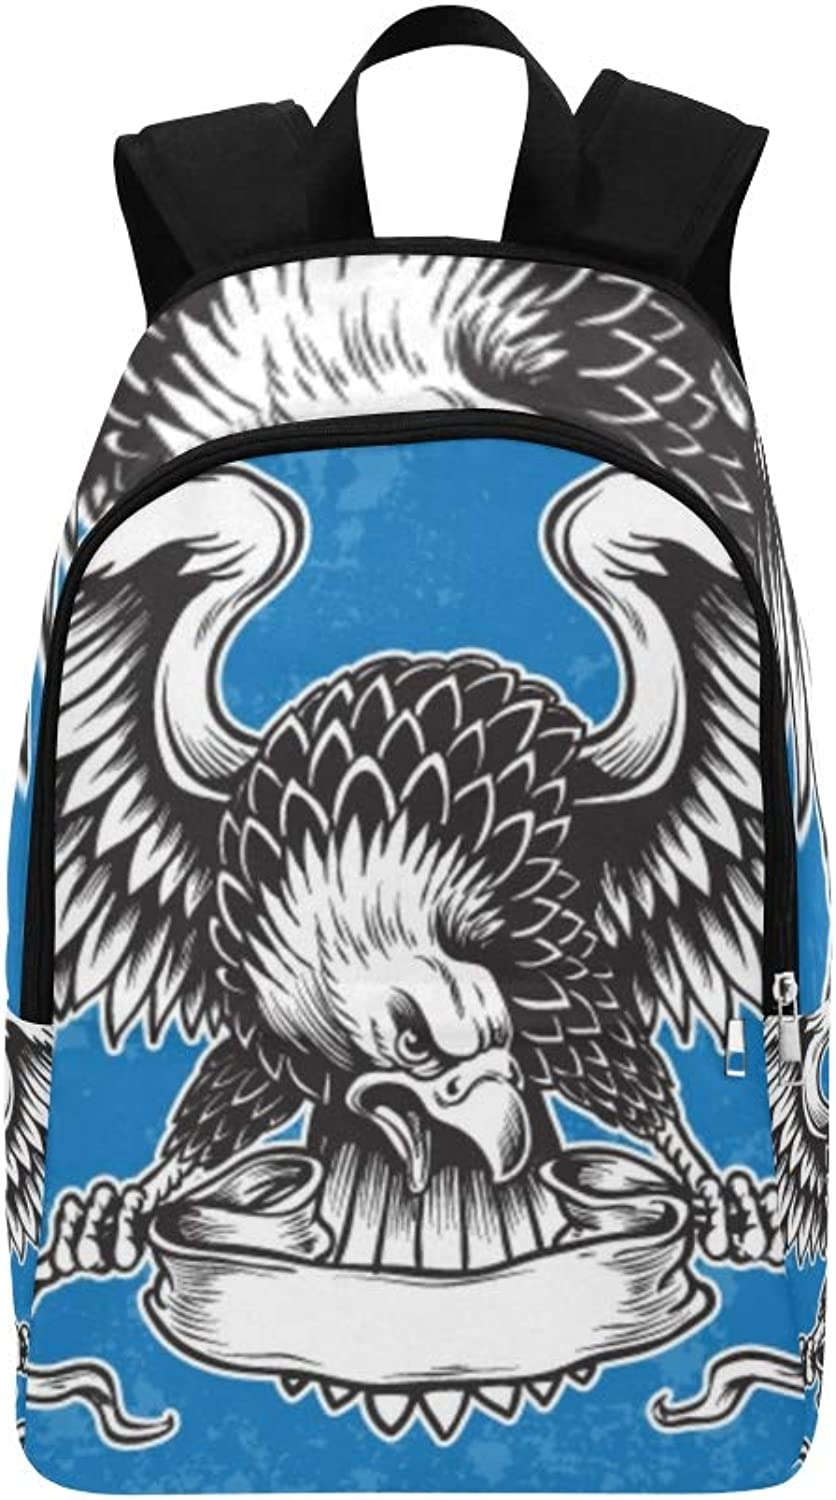 Detailed Hand Drawn Eagle Holding Scroll Casual Daypack Travel Bag College School Backpack for Mens and Women